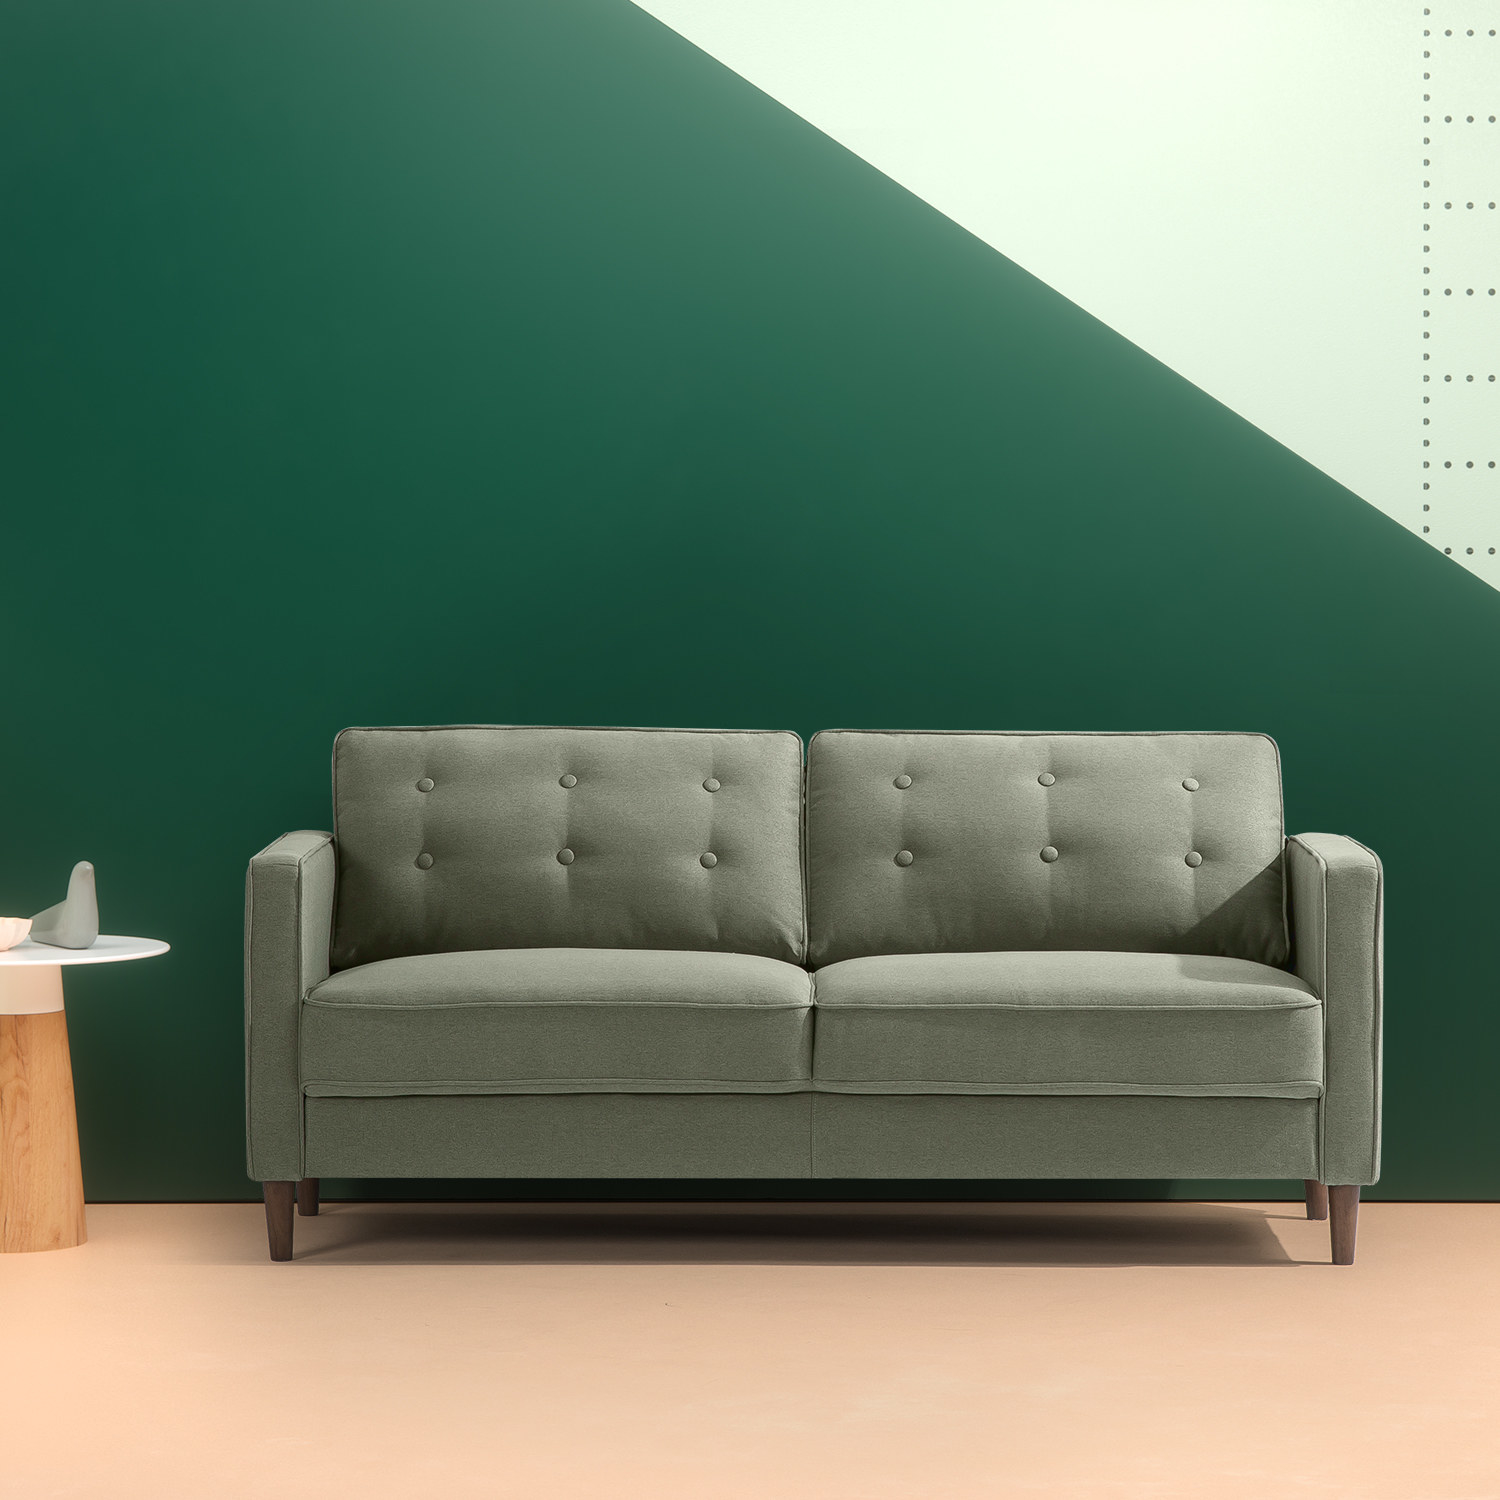 22 Of The Best Couches And Sofas You Can Get From Walmart